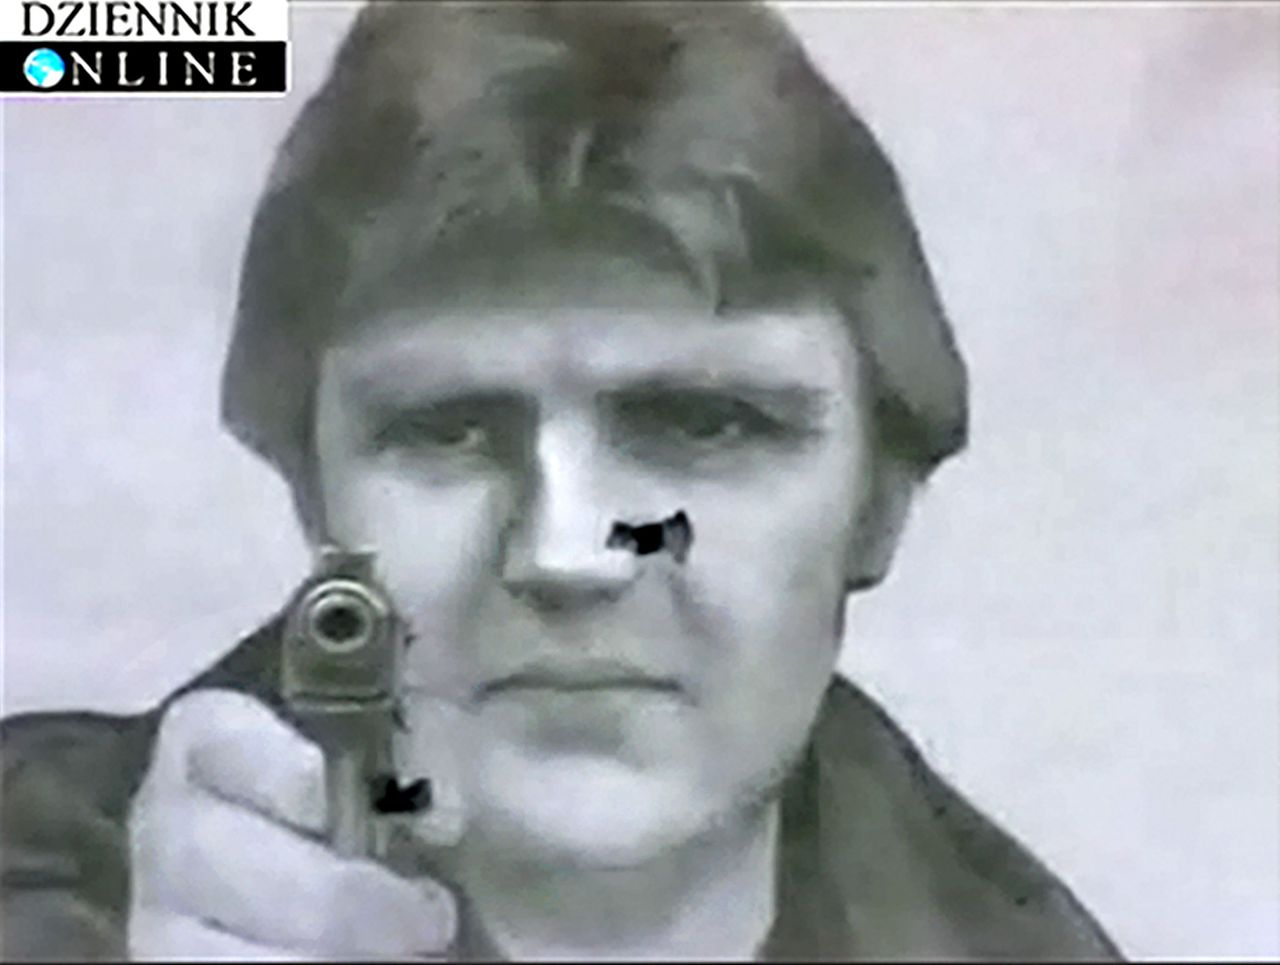 De foto van Litvinenko als doelwit op de schietbaan. Foto AP In this undated image made from television footage of Polish website Dziennik Online, a shooting target showing the image of Alexander Litvinenko, the former agent who was fatally poisoned in London last year, is seen at a private training center, in Moscow. Sergei Lysyuk, head of the Vityaz Center, a private center that trains security personnel and held a competition for Russian special forces, confirmed Tuesday, Jan. 30, 2007, that the center has used shooting targets showing the photo of Litvinenko. (AP Photo/Dziennik Online, HO) ** TV OUT IMAGE MUST BE USED IN ITS ENTIRETY **